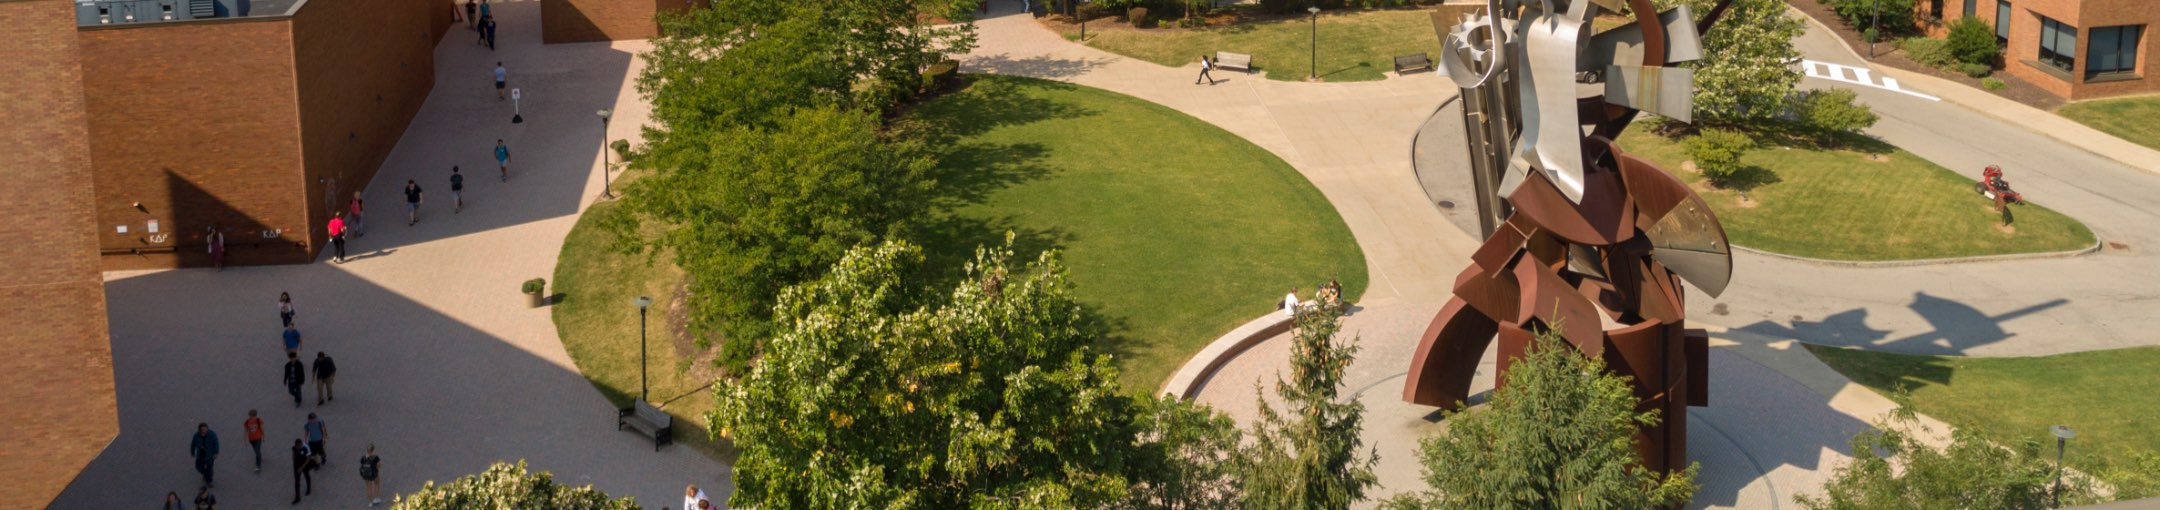 Overhead view of the sentinel on campus.